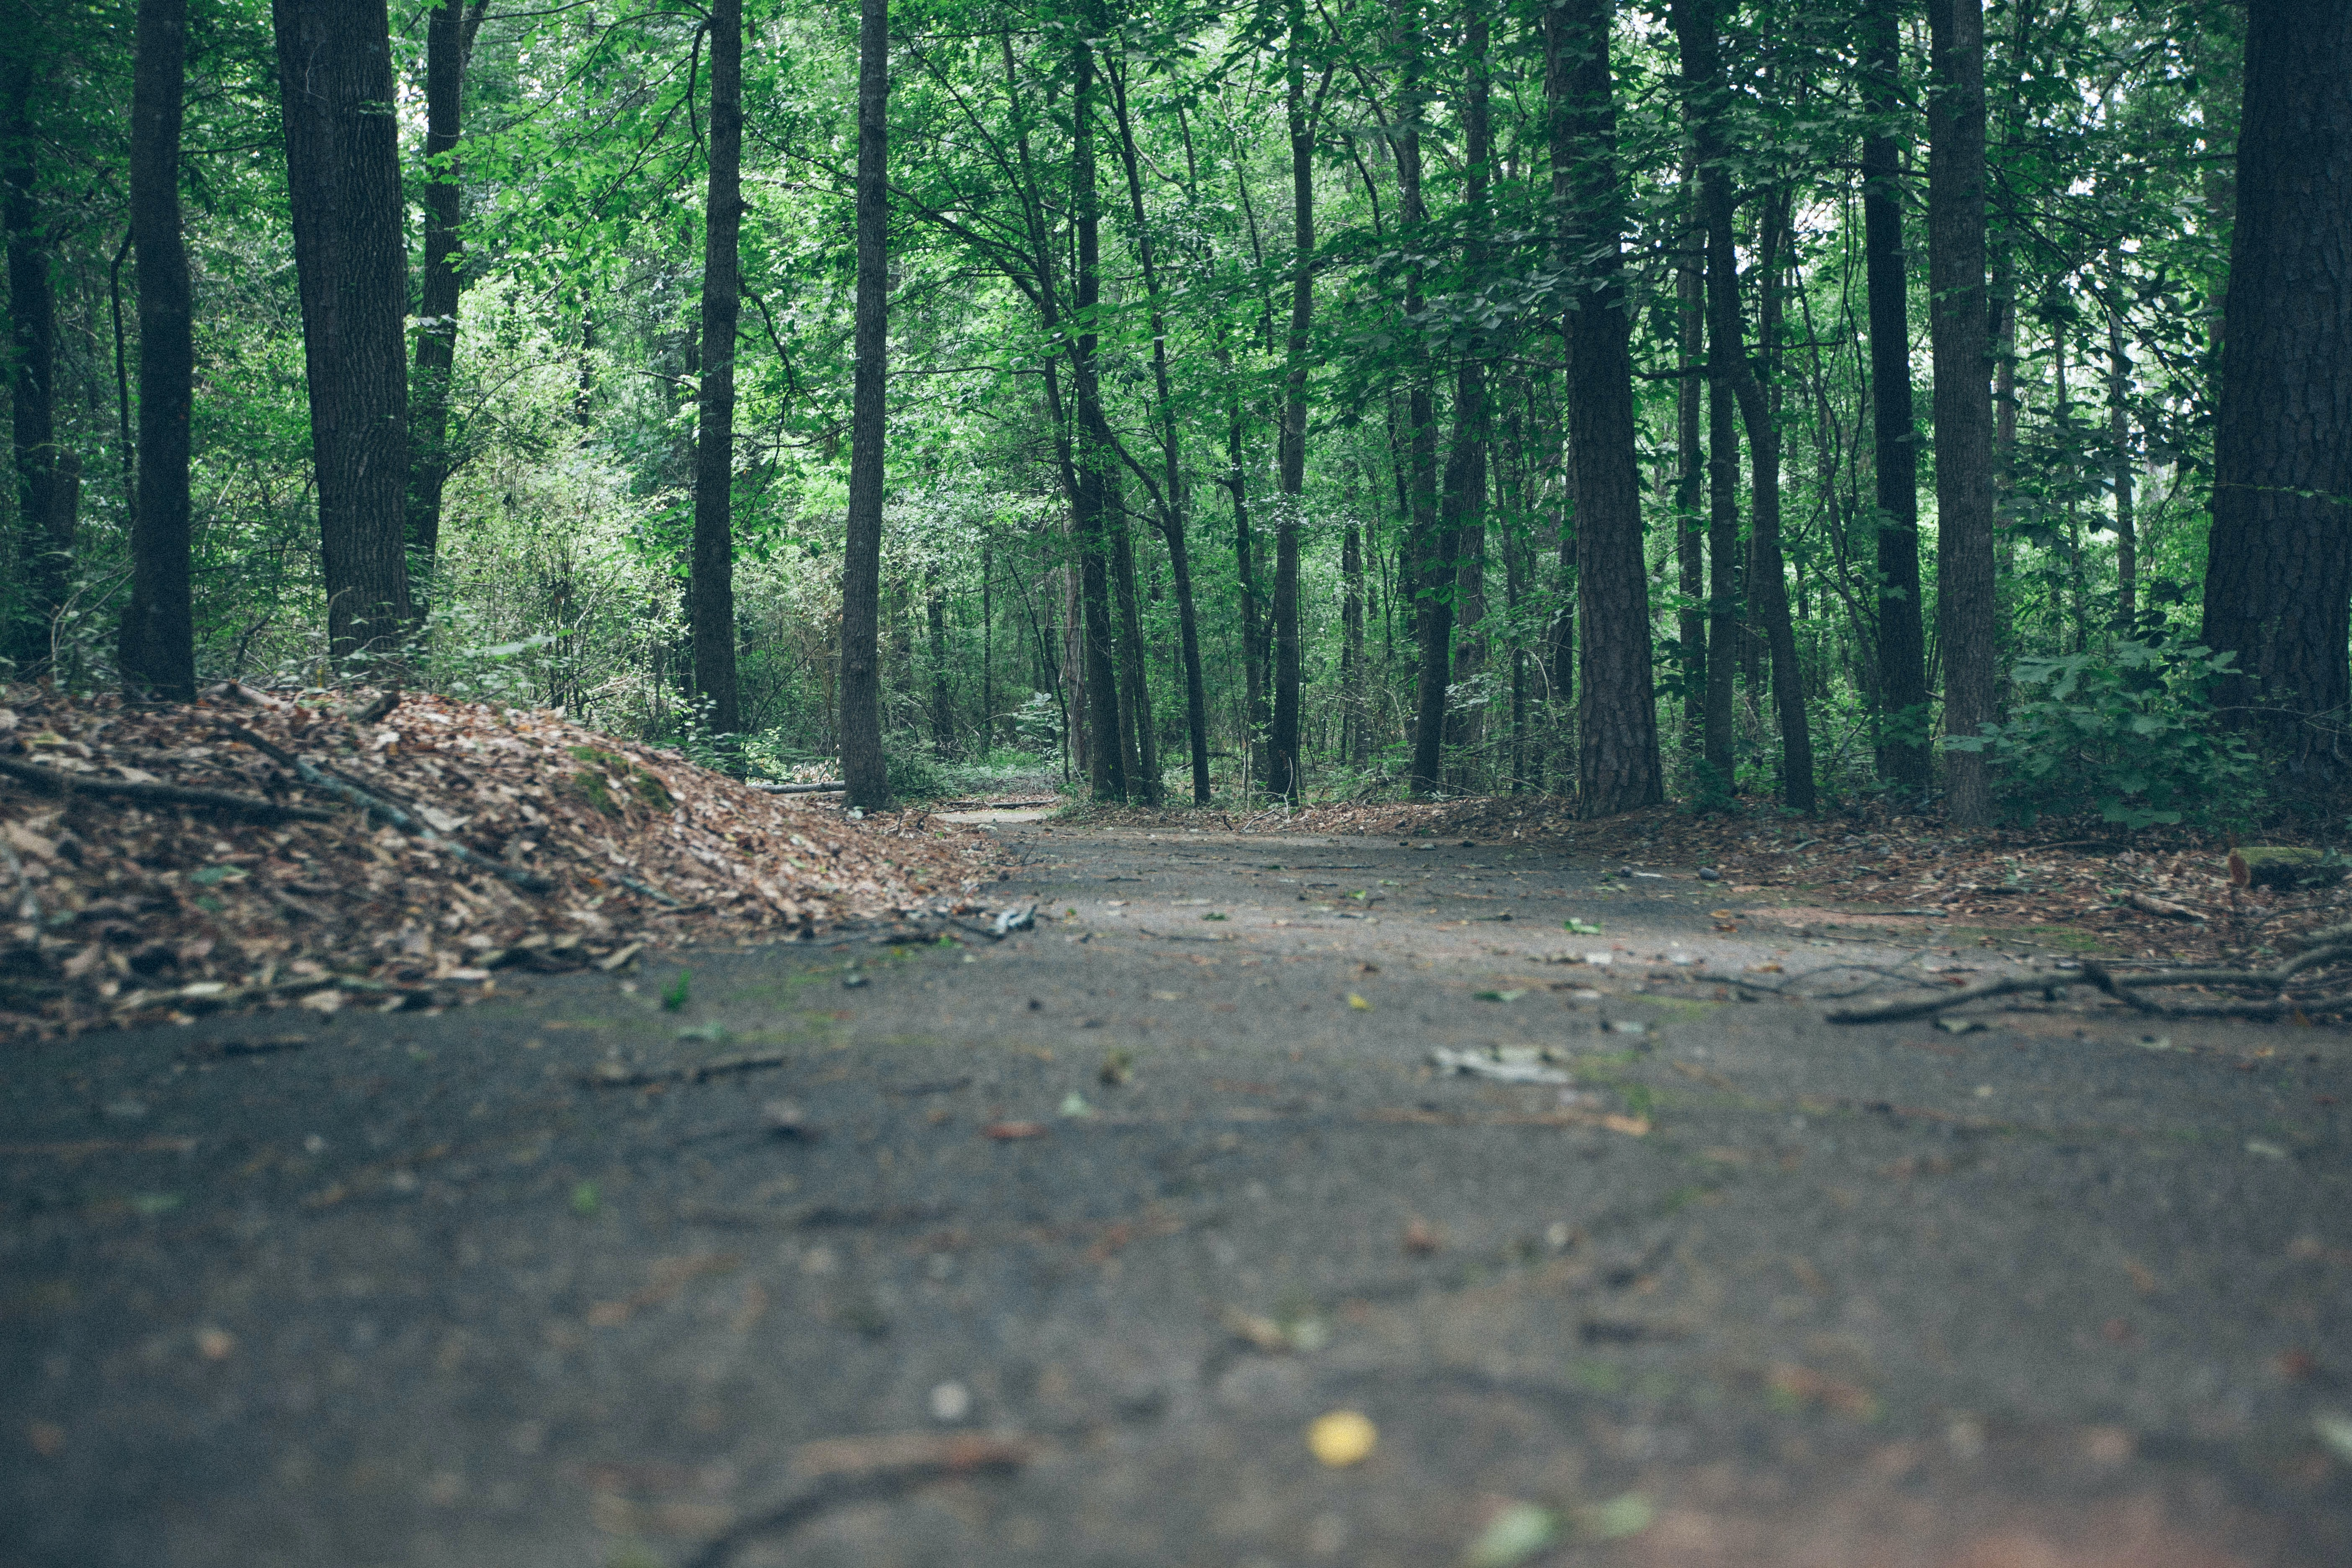 A low shot of an asphalt path in a forest